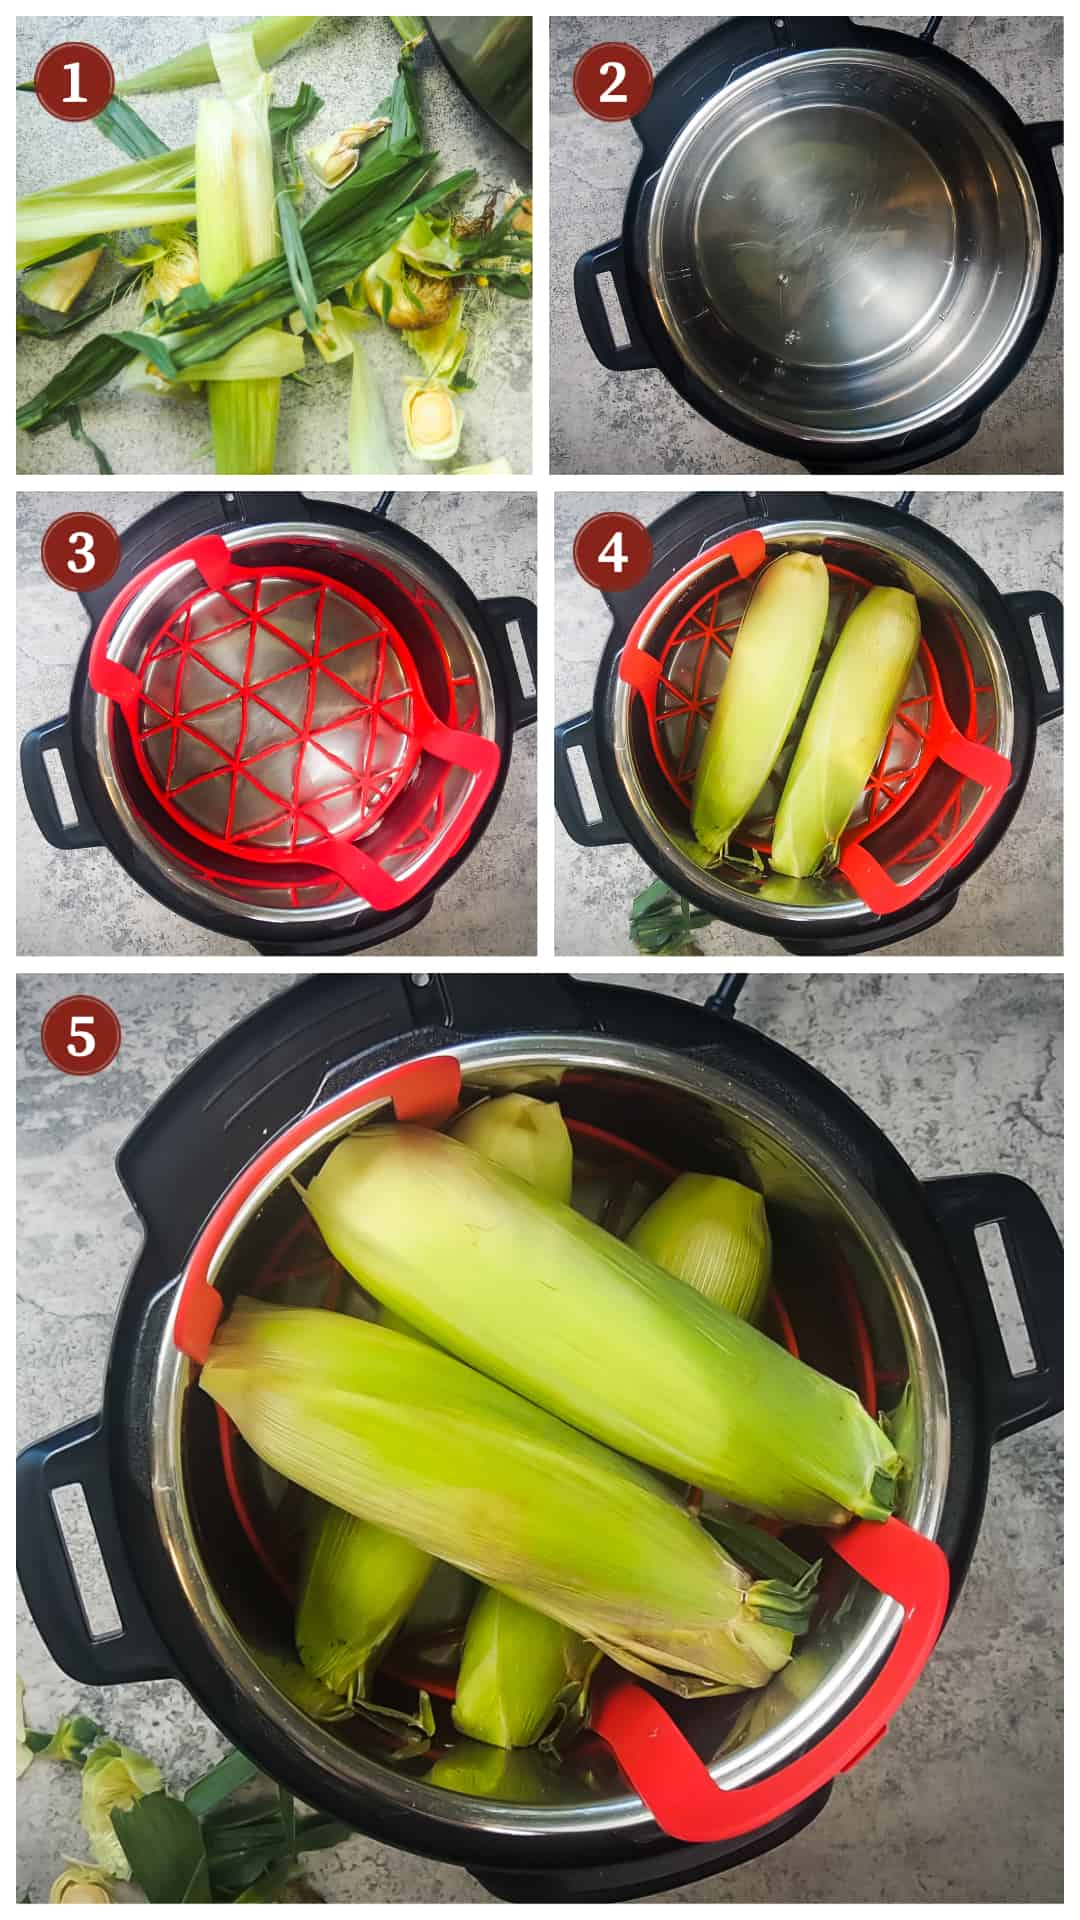 a process collage of cooking corn on the cob in an instant pot, steps 1 - 5